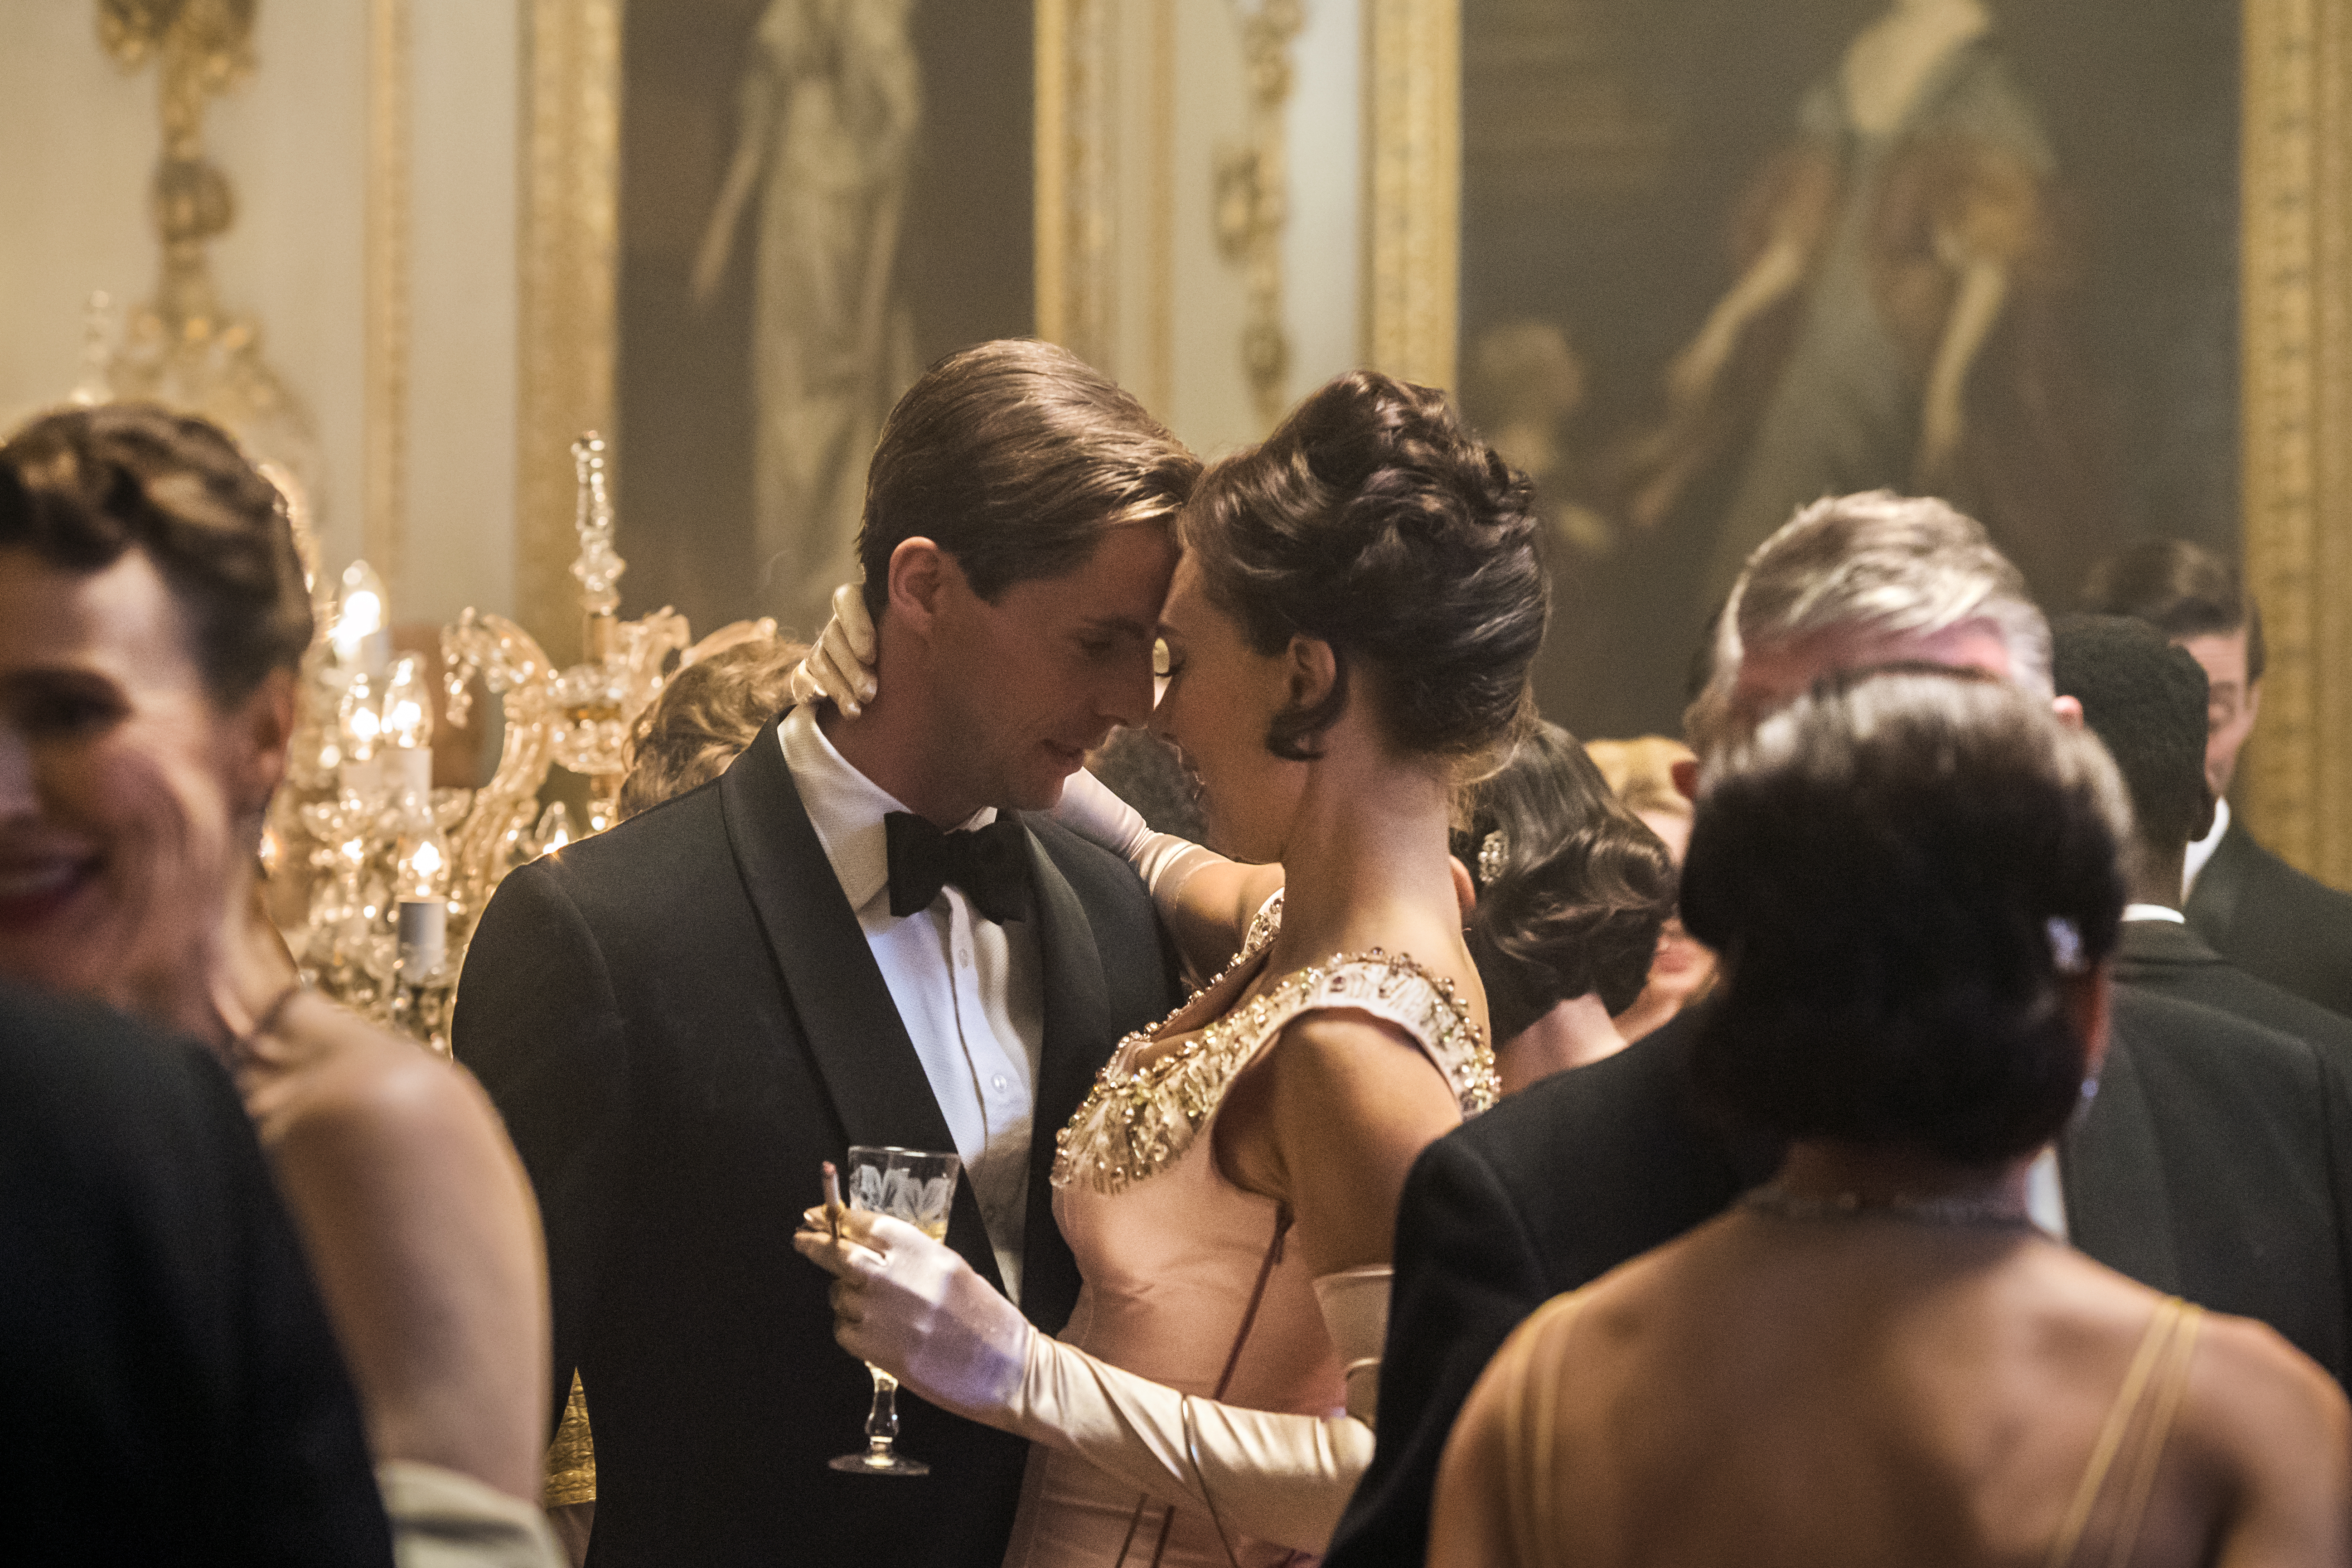 Antony Armstrong-Jones and Princess Margaret share a moment at their engagement party in The Crown.